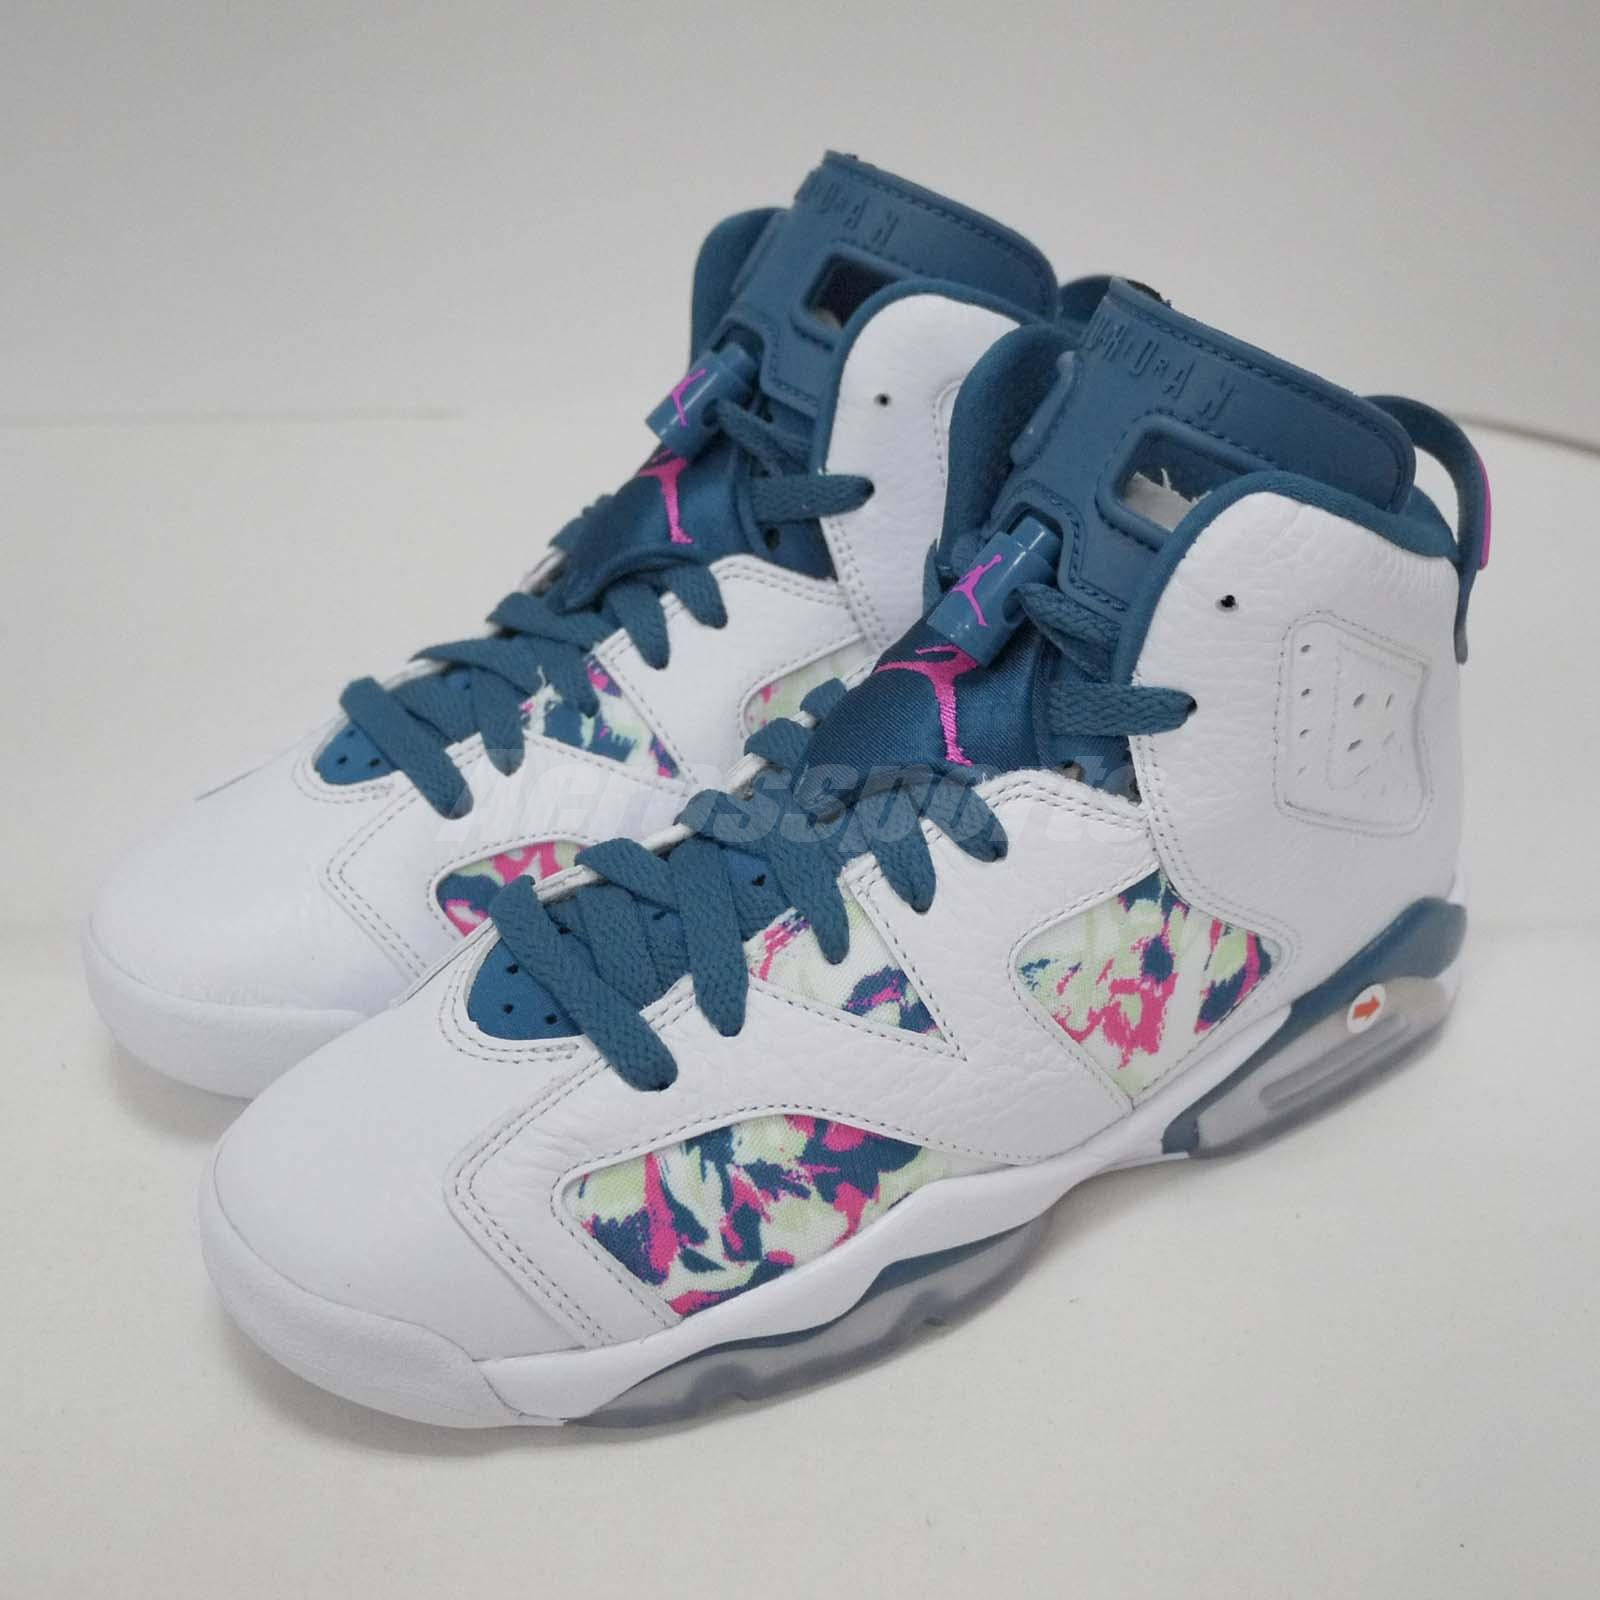 add724564da1 Details about Nike Air Jordan 6 Retro GG VI Left Foot With Discoloration  Kids US4.5 543390-153